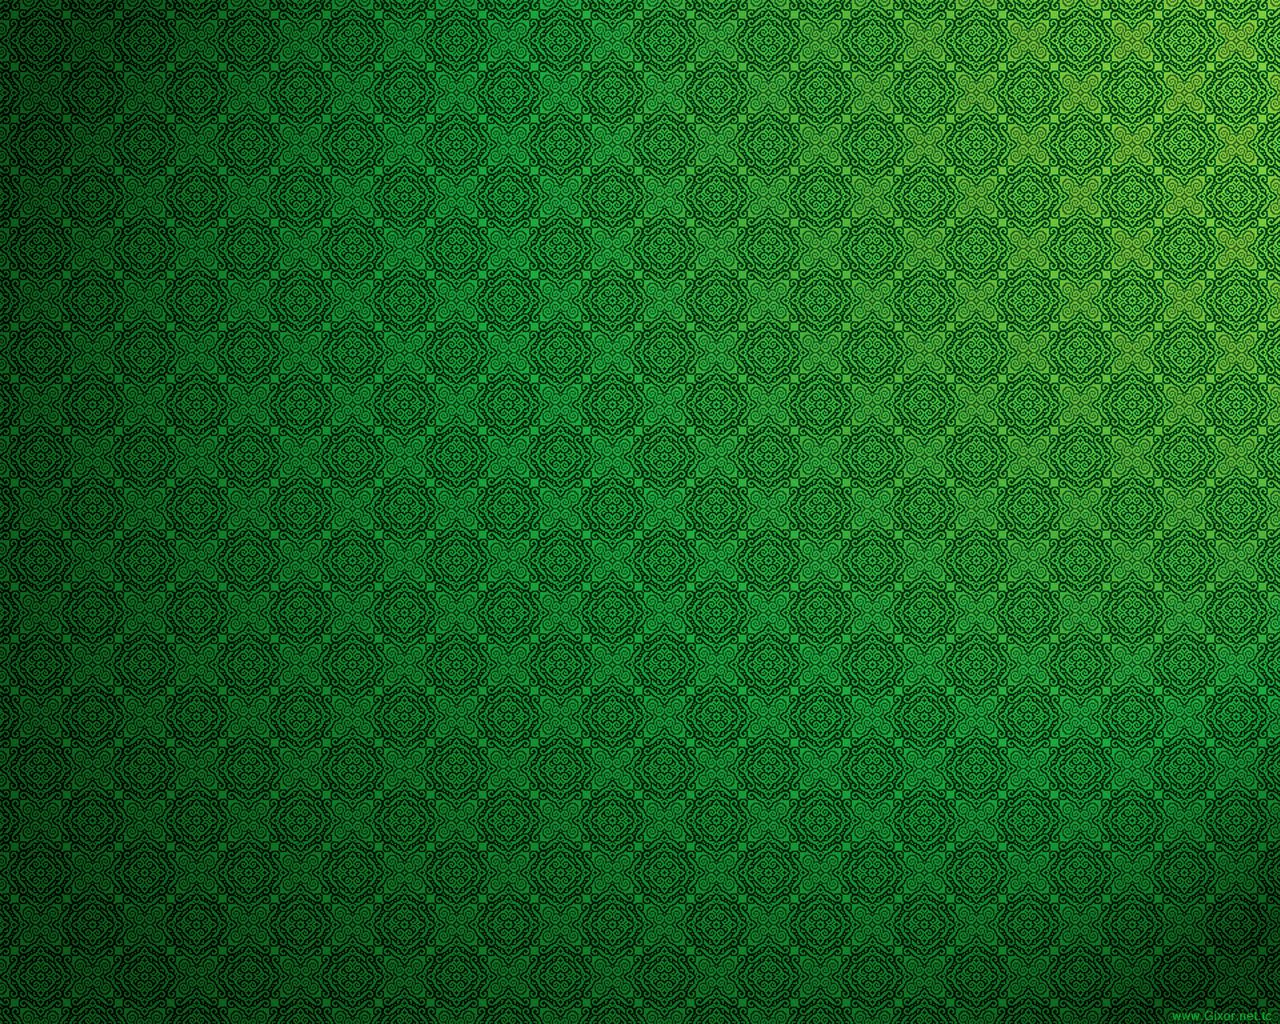 green texture wallpaper from - photo #4